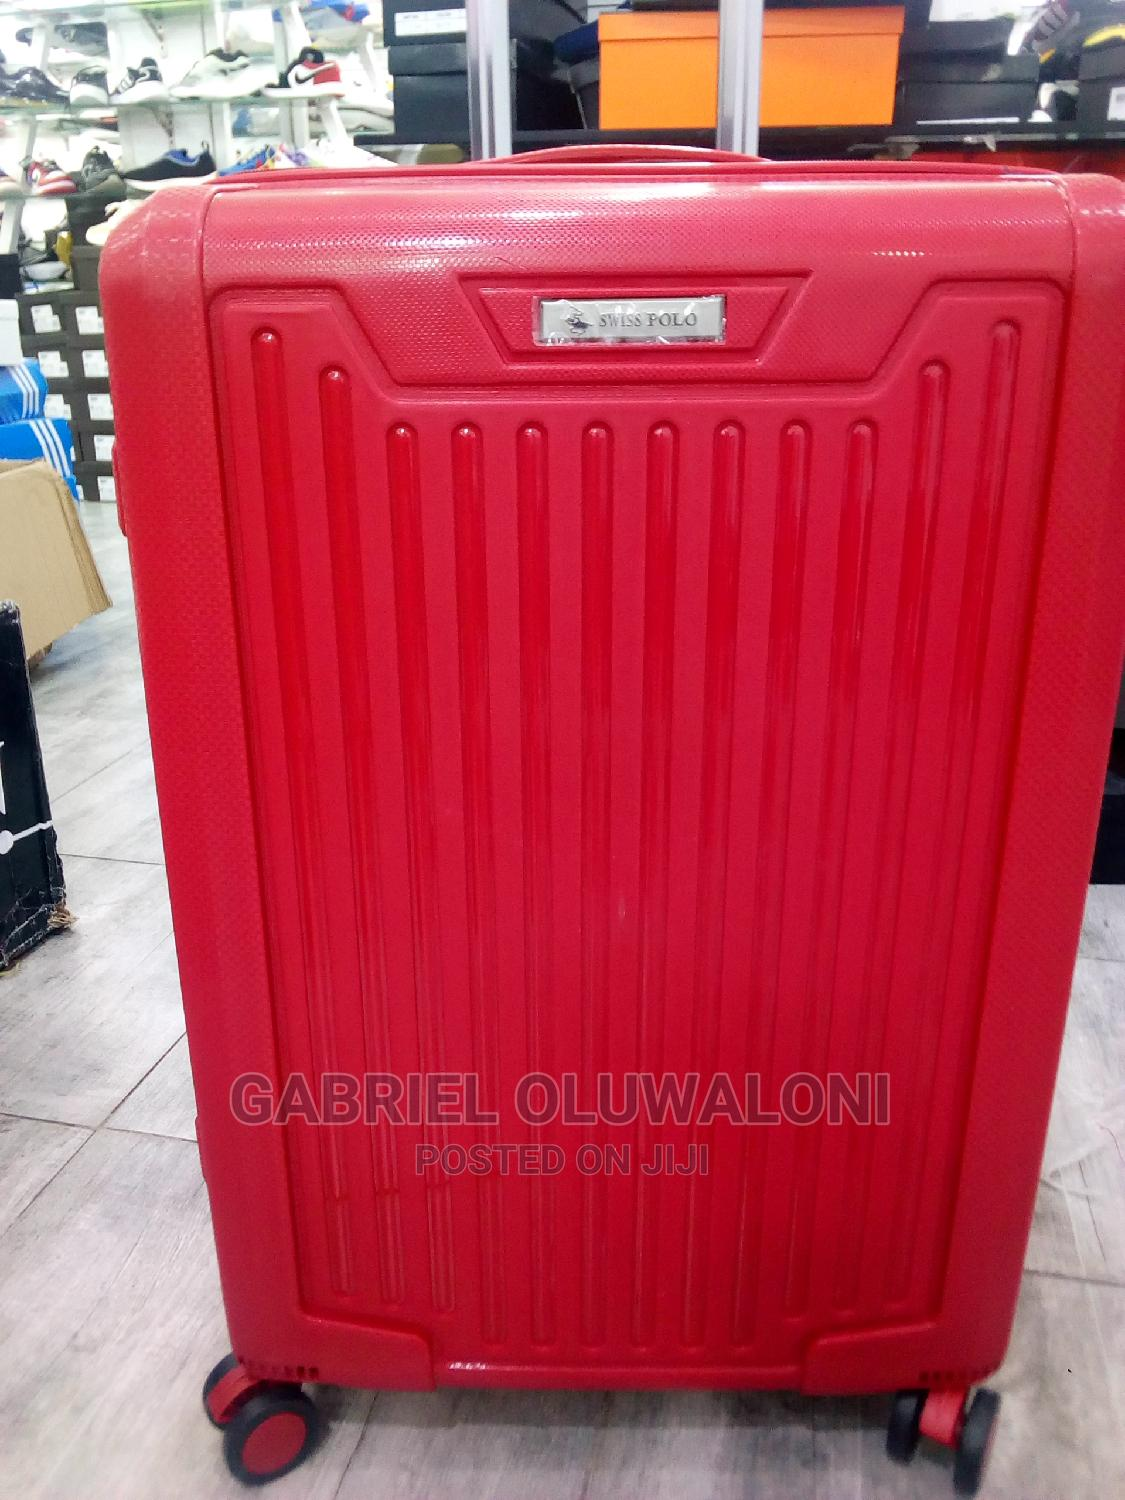 Swiss Polo Suitcase Size 1